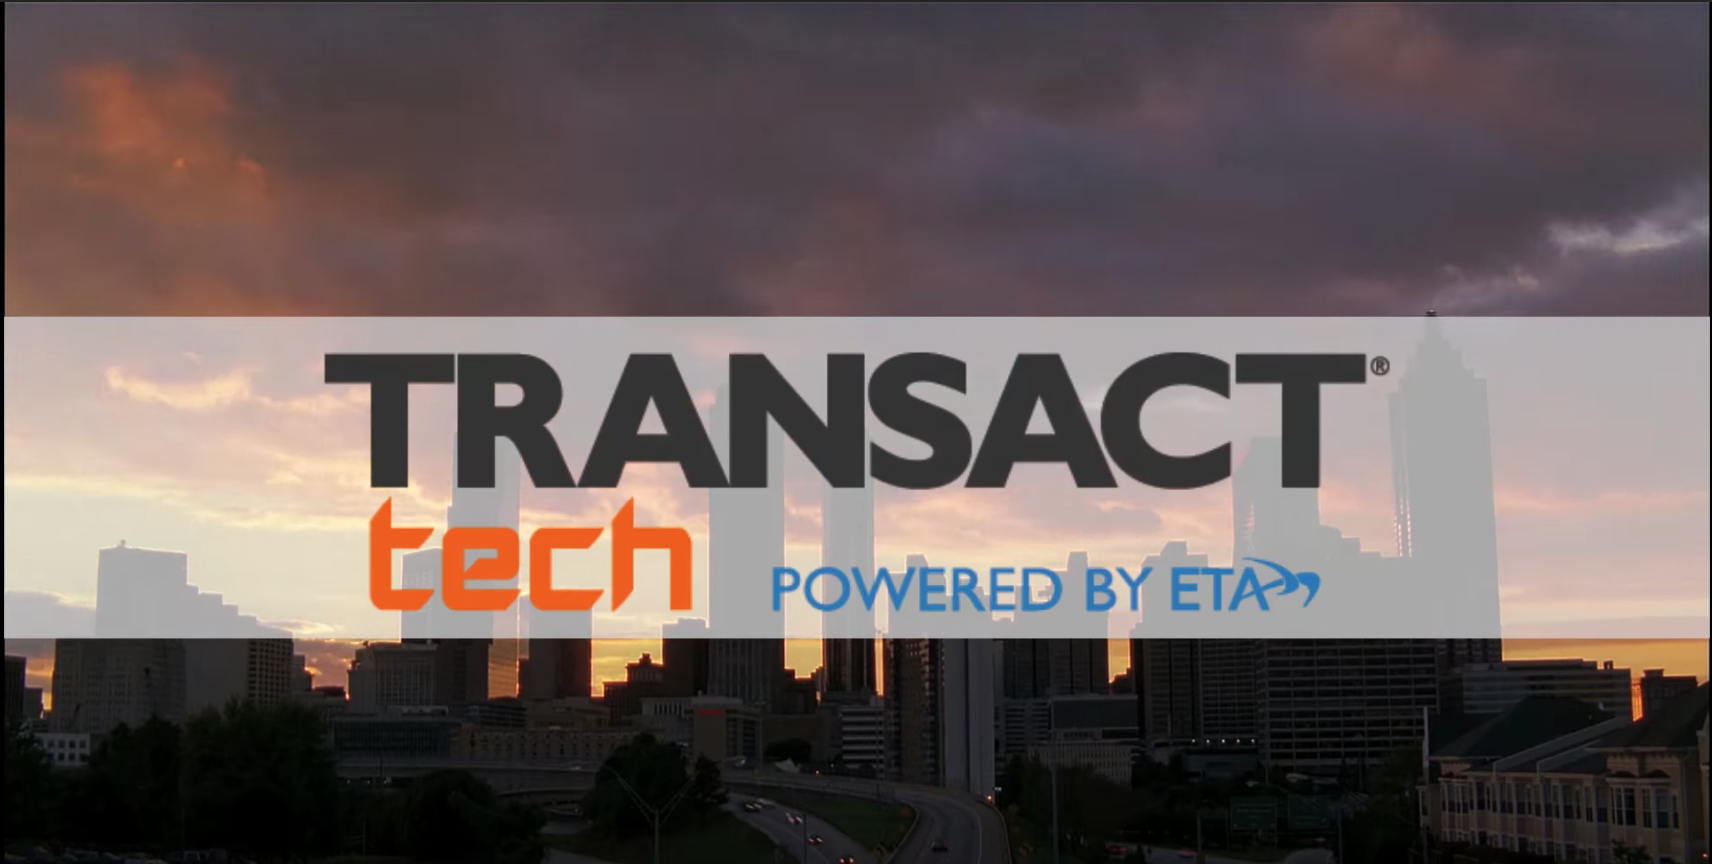 """Discussing ISV and merchant acquirer partnerships at TRANSACT Tech  Worldpay US is excited to give the closing keynote on the value in connecting merchant acquirers and independent software vendors (ISVs), strengthening merchant acquisition strategies and capitalizing on the exploding FinTech industry.  Worldpay US Chief Executive Officer Kim Goodman will deliver the closing keynote at this year's  TRANSACT Tech event in Atlanta. The presentation, """"Driving merchant value through ISV partnerships,"""" will provide an in-depth look at how FinTech companies can work with merchant acquirers to develop an effective business strategy.  More than ever, FinTech companies are focusing on customized integrated solutions for small businesses, specializing in specific verticals and aiming to deliver value directly to their customers.  While payment processing plays a role in these solutions, it's not the main driver of a purchasing decision. There are more than 10,000 ISVs in the U.S., representing approximately 10 percent of new merchant accounts each year. This keynote will focus on the growing number of business strategies that U.S. merchant acquirers are pursuing in reaction to this growing trend.  In today's highly-fragmented ISV segment, both ISVs and merchant acquirers can drive more value in commerce by working together through strategic partnerships. To learn more about the exciting innovations impacting the merchant acquiring industry, join Kim's keynote on Tuesday, June 20 at 3:40 p.m at the Georgia Tech Student Center.  Be sure to follow us on  Twitter for live updates from the event."""